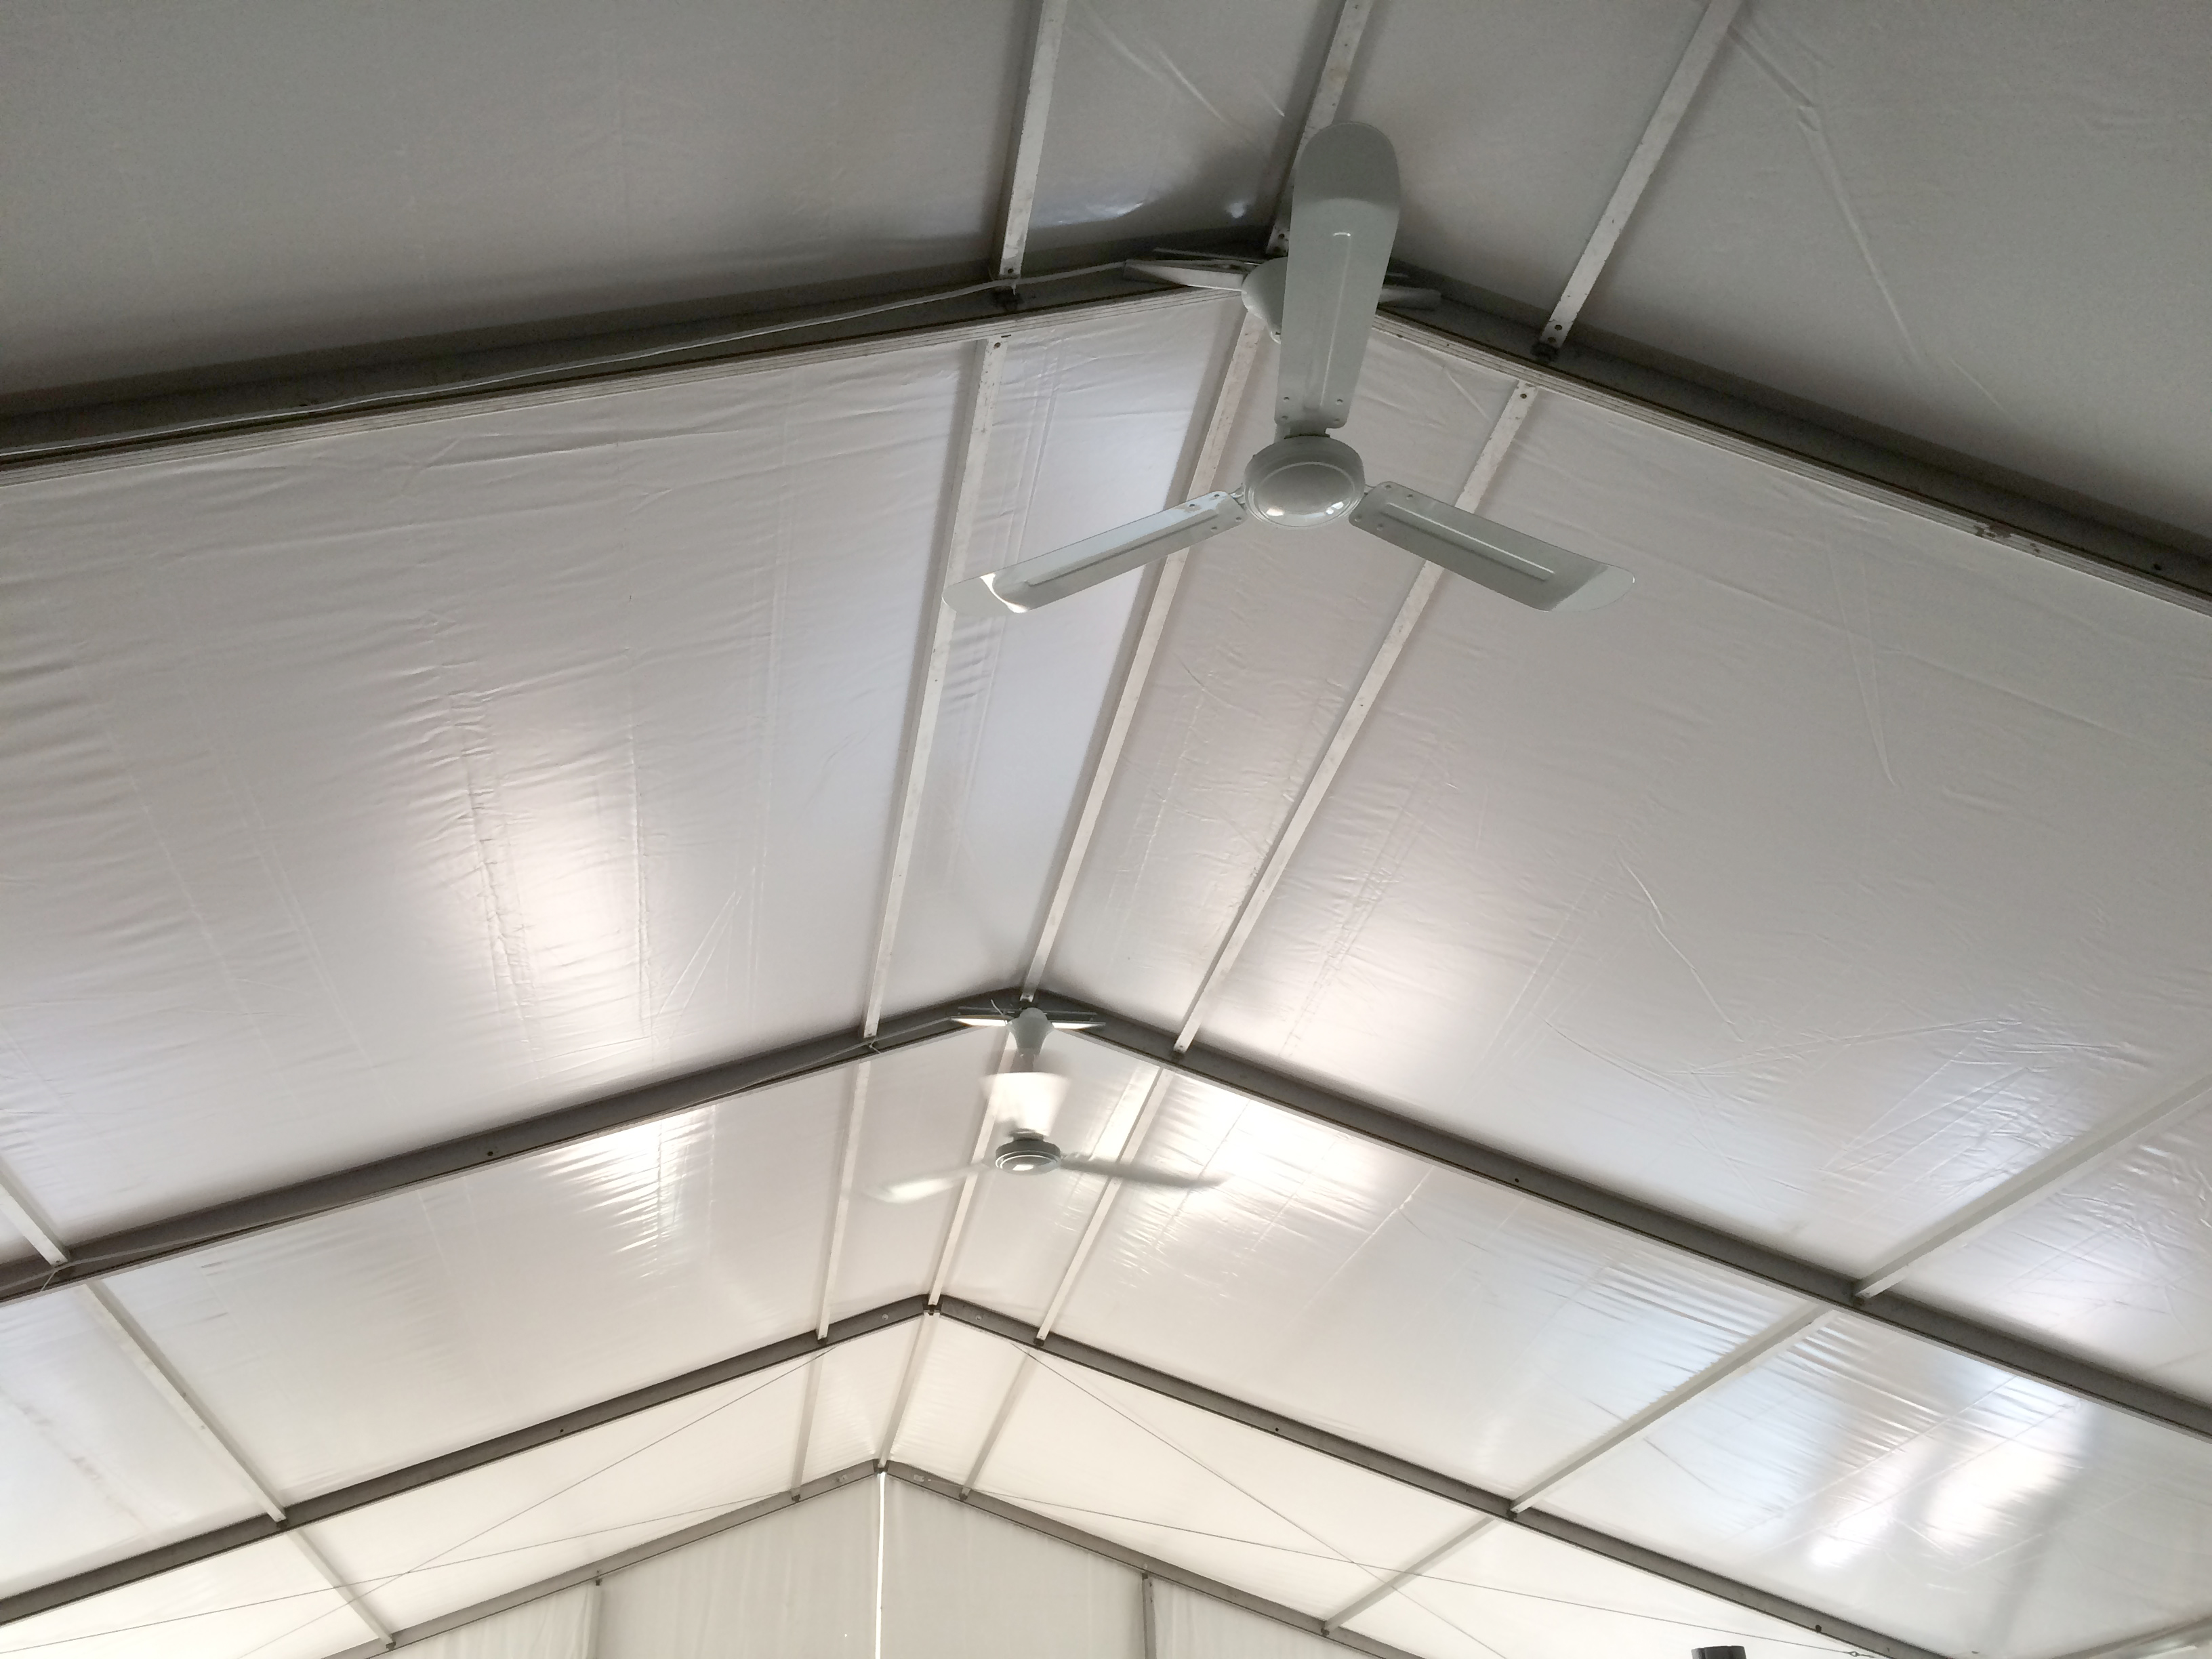 Ceiling fan under tentevent structure rental peak of event tent with ceiling fans installed mozeypictures Image collections